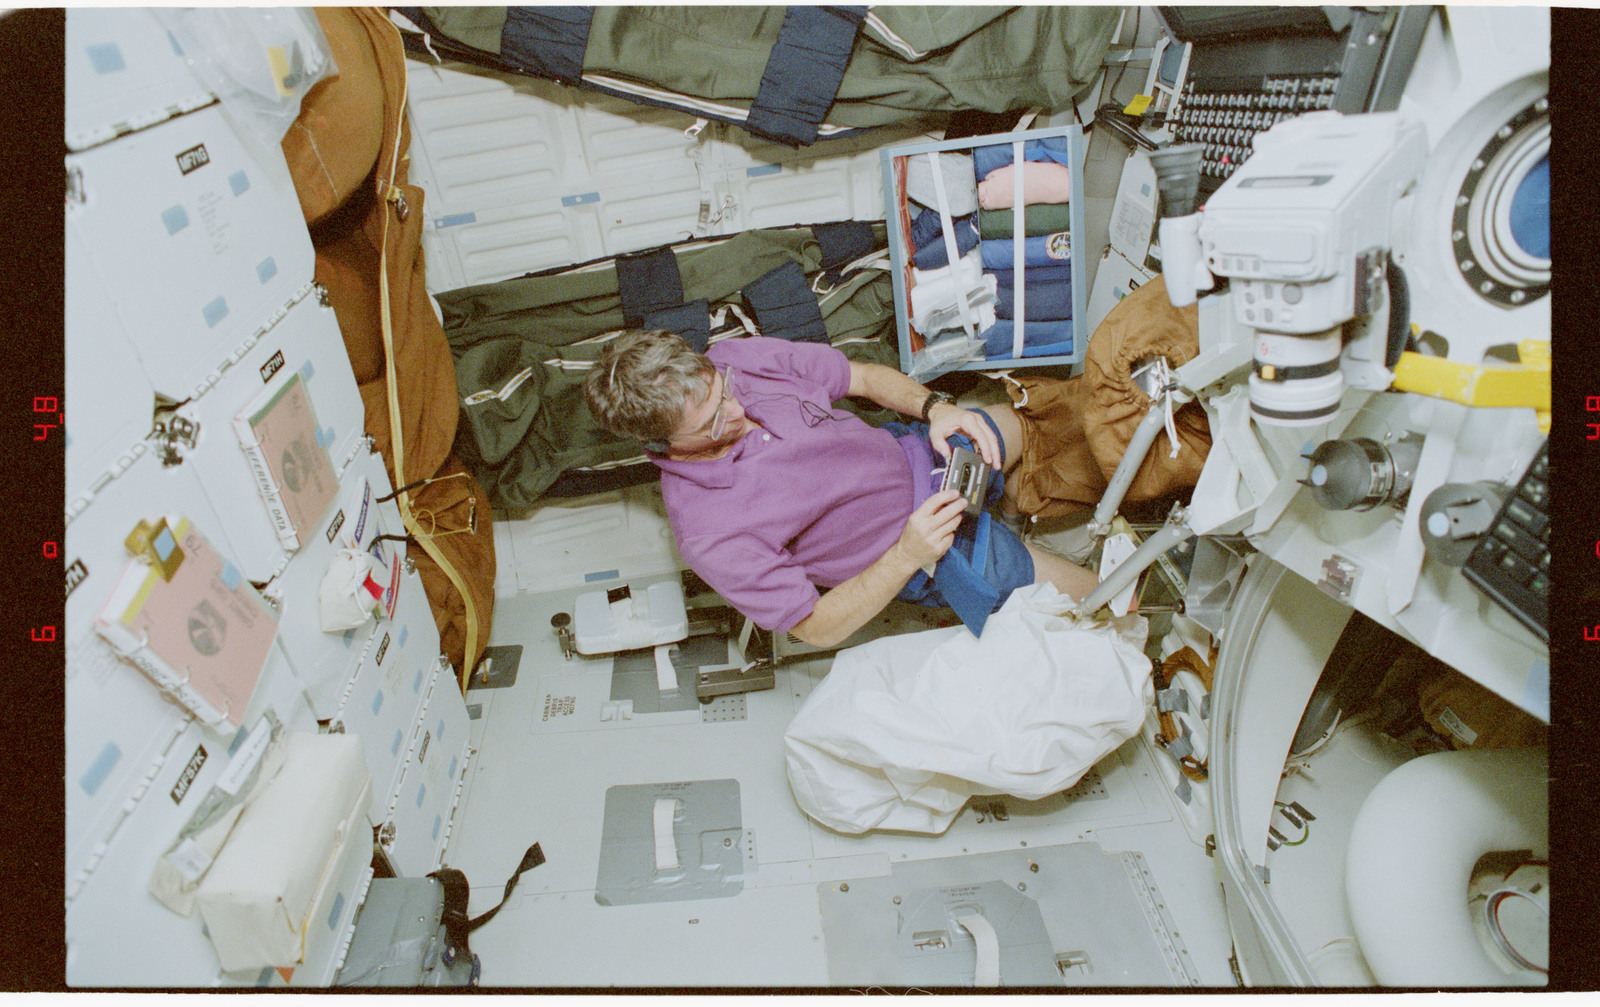 STS079-330-012 - STS-079 - STS-79 crew activities